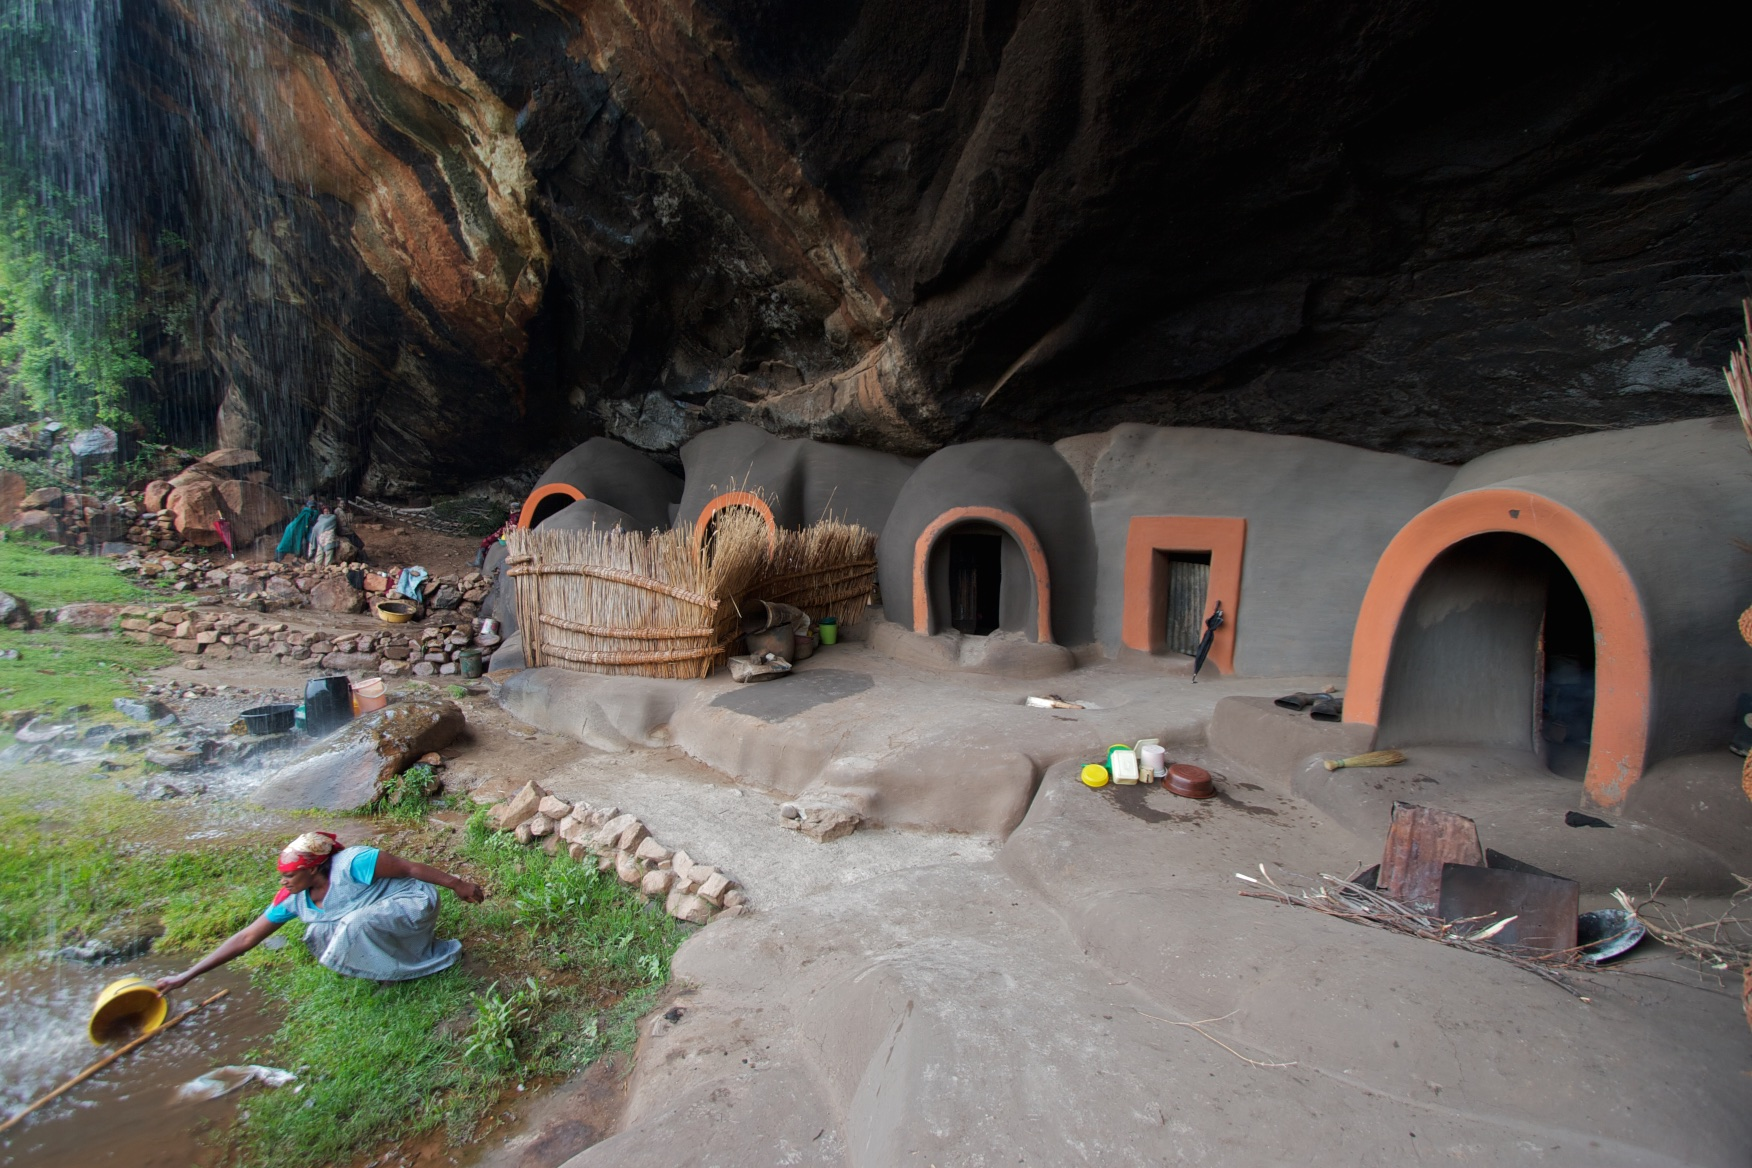 Under the waterfall: the families living beneath a precipice. Lesotho